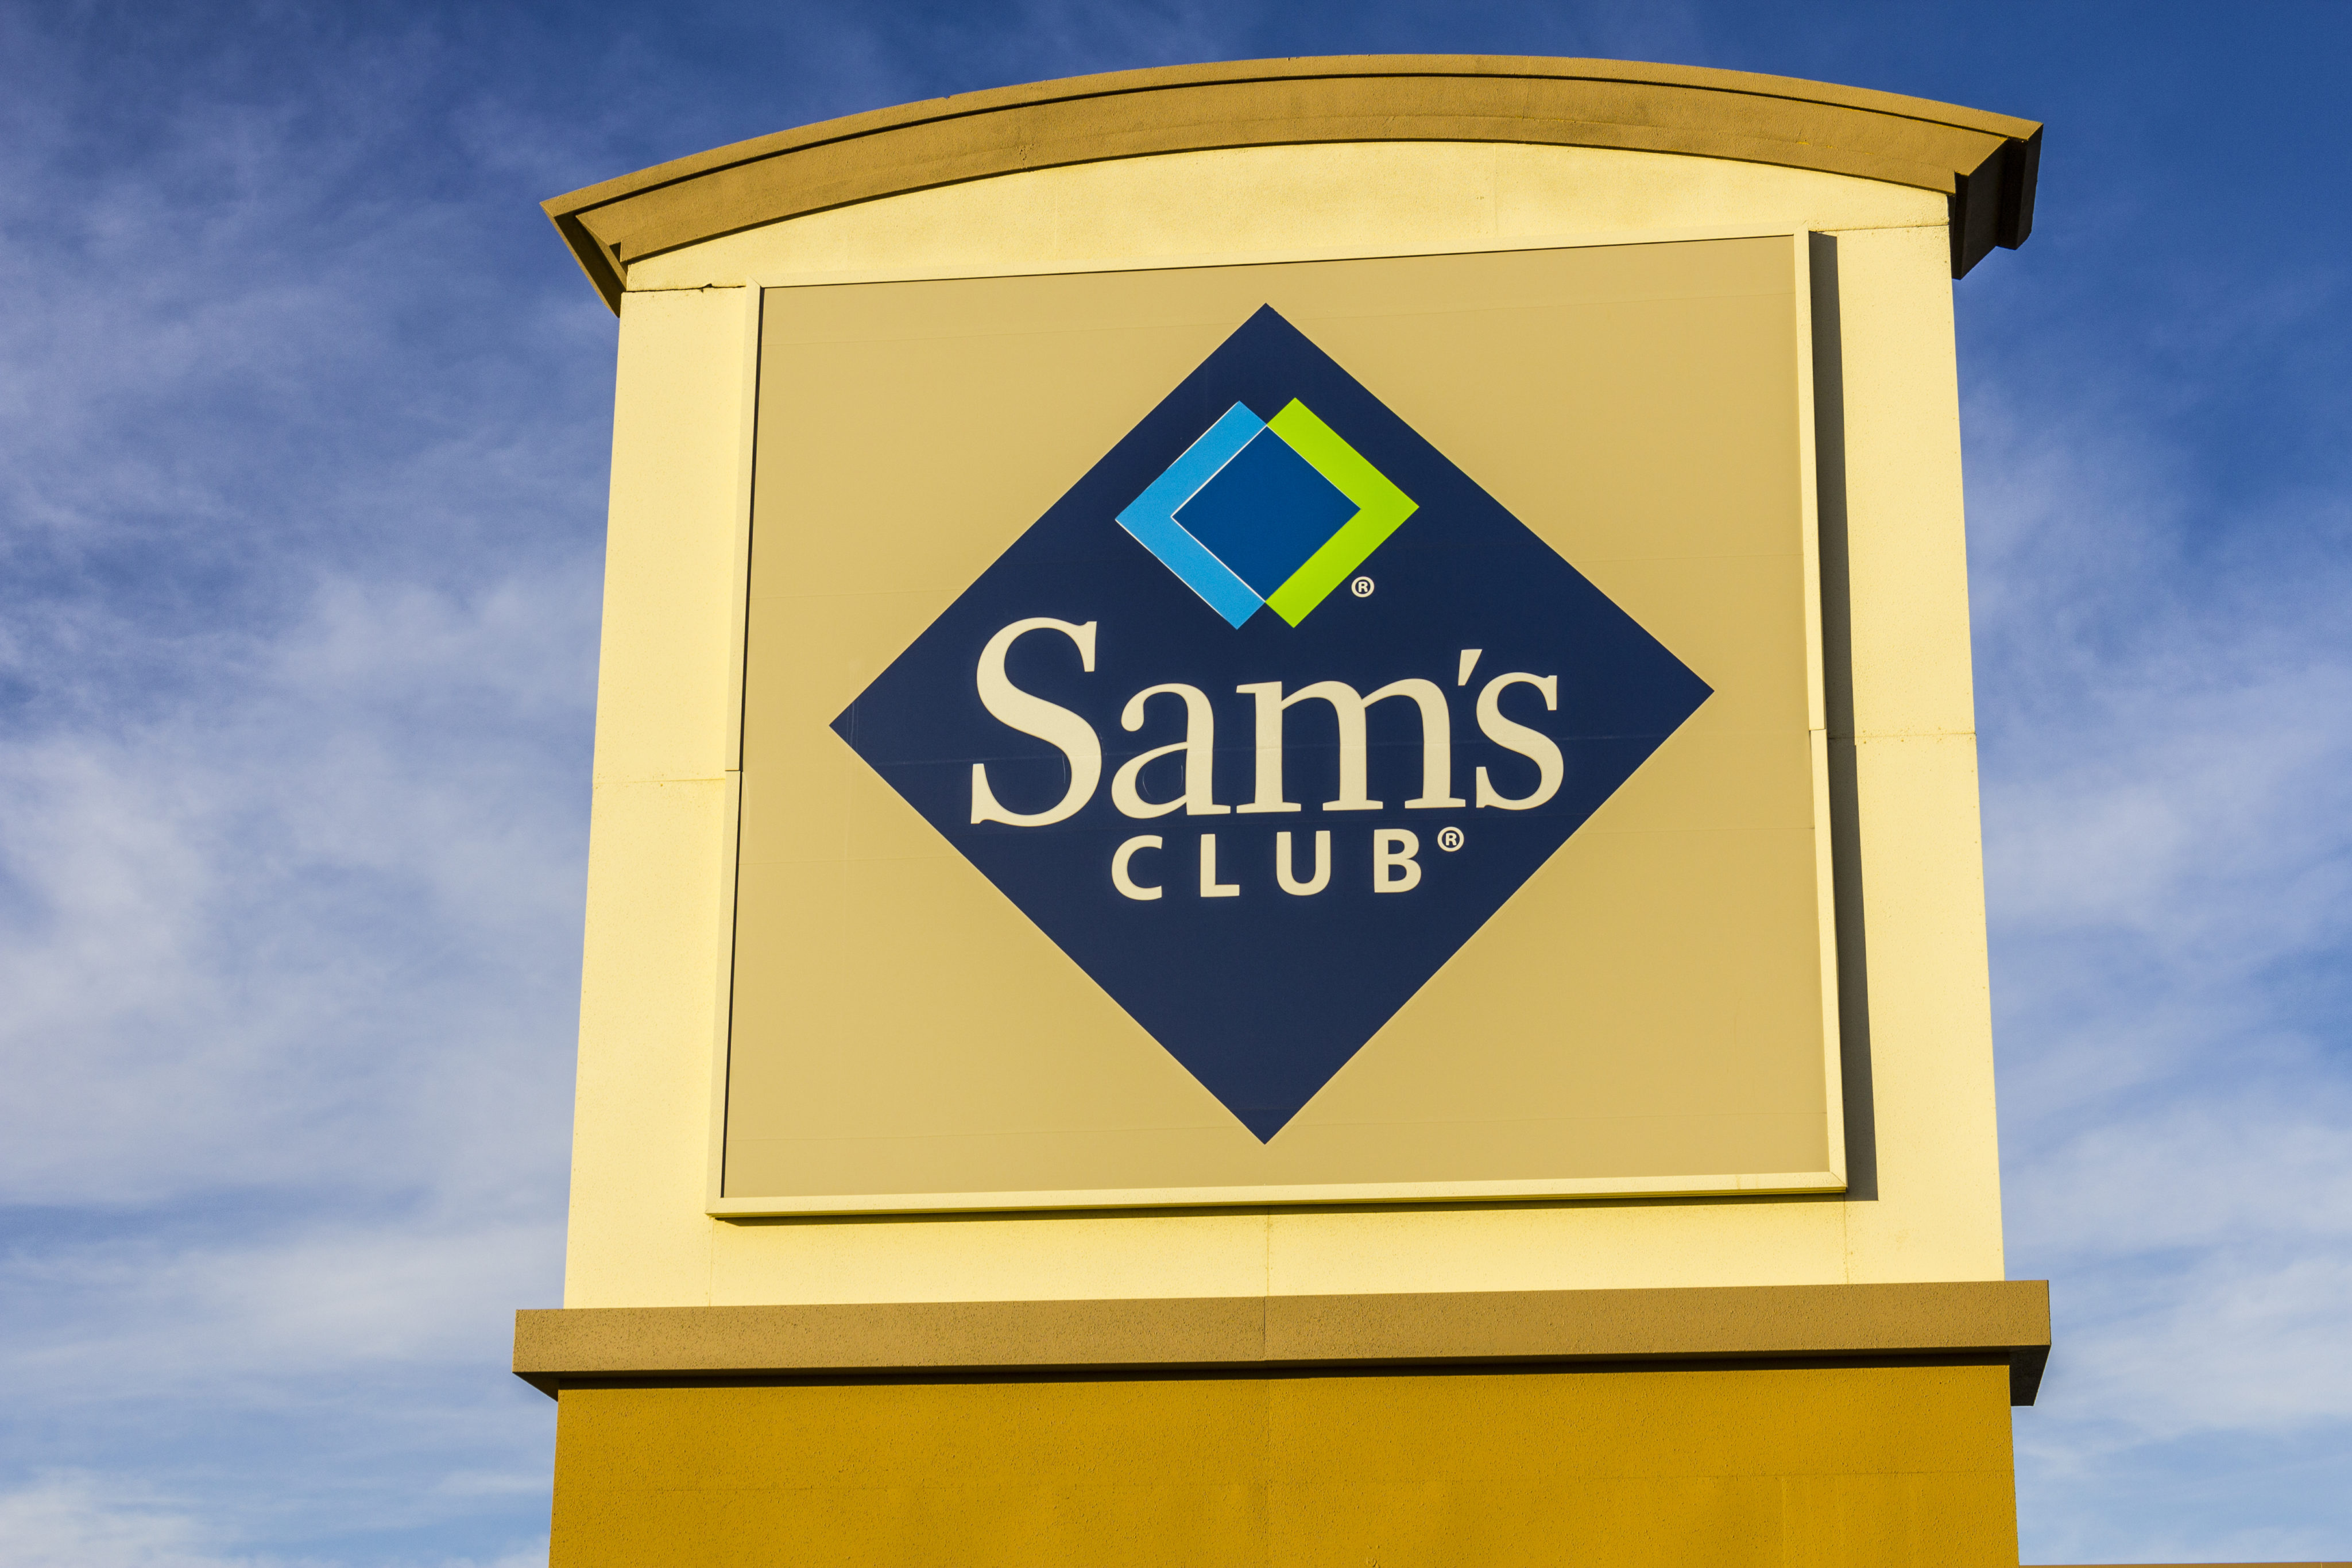 This $45 Sam's Club Membership Deal Pays for Itself ...